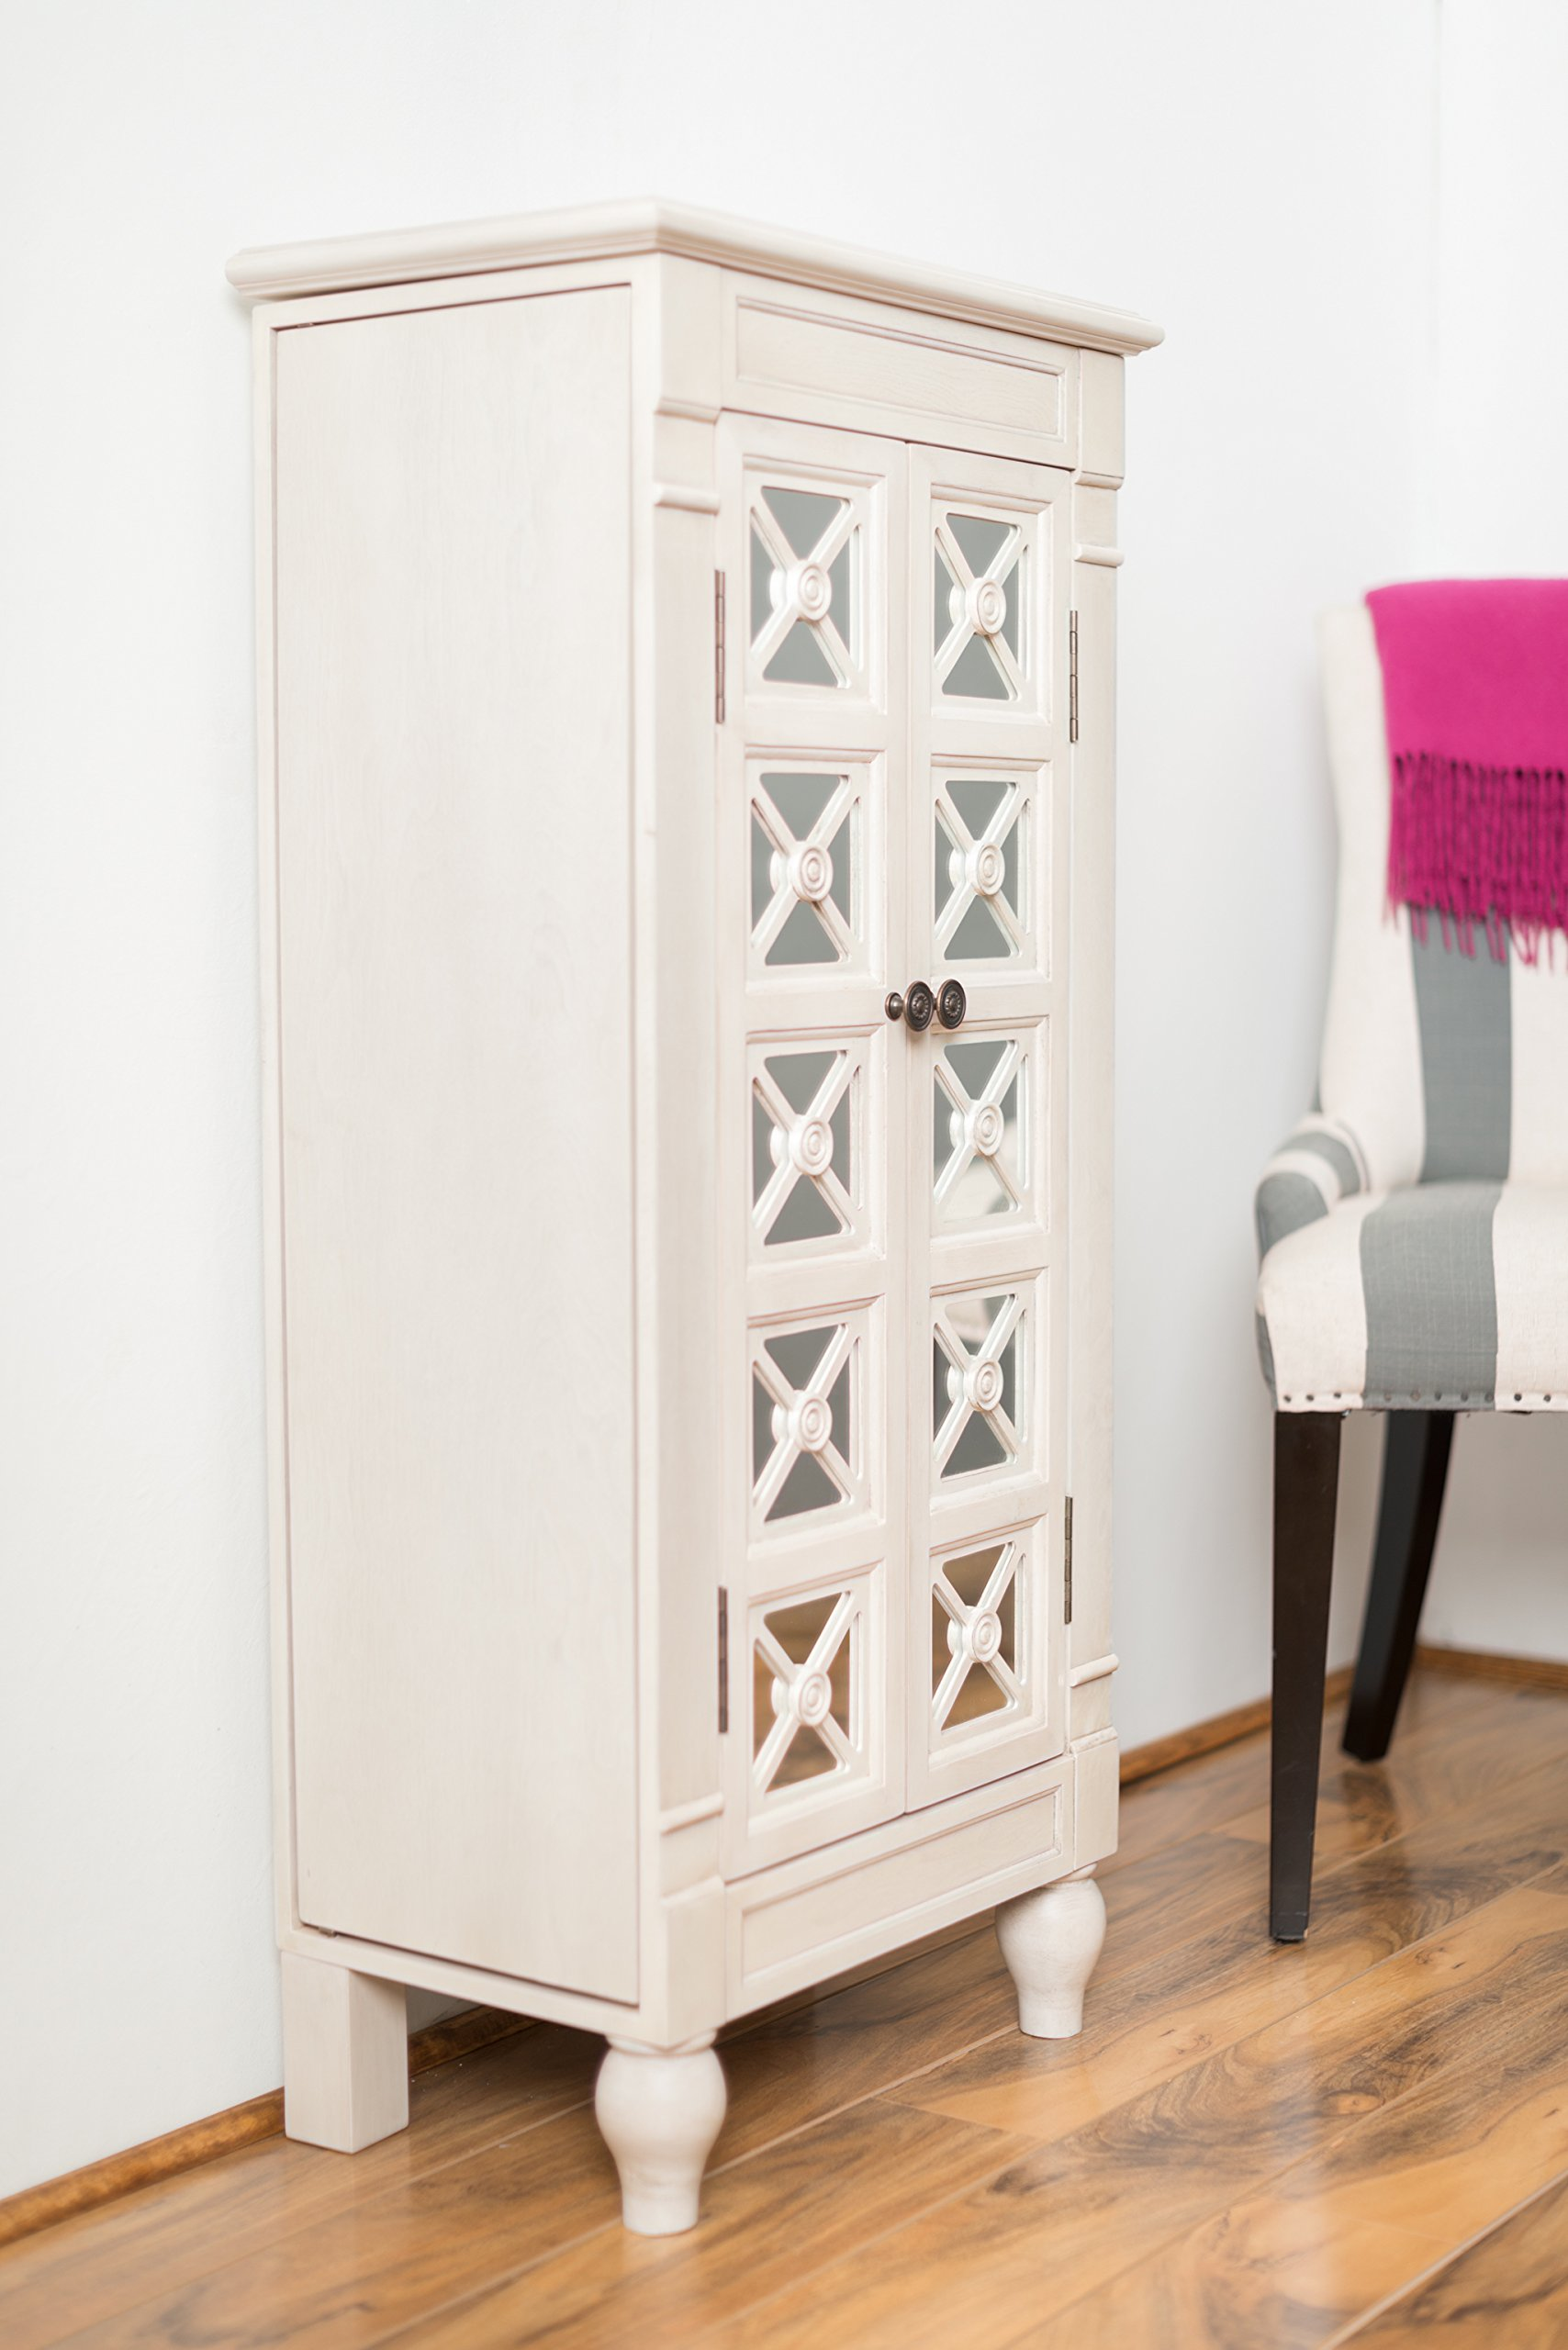 Hives and Honey ''Celene'' Jewelry Armoire, Century White by Hives and Honey (Image #2)